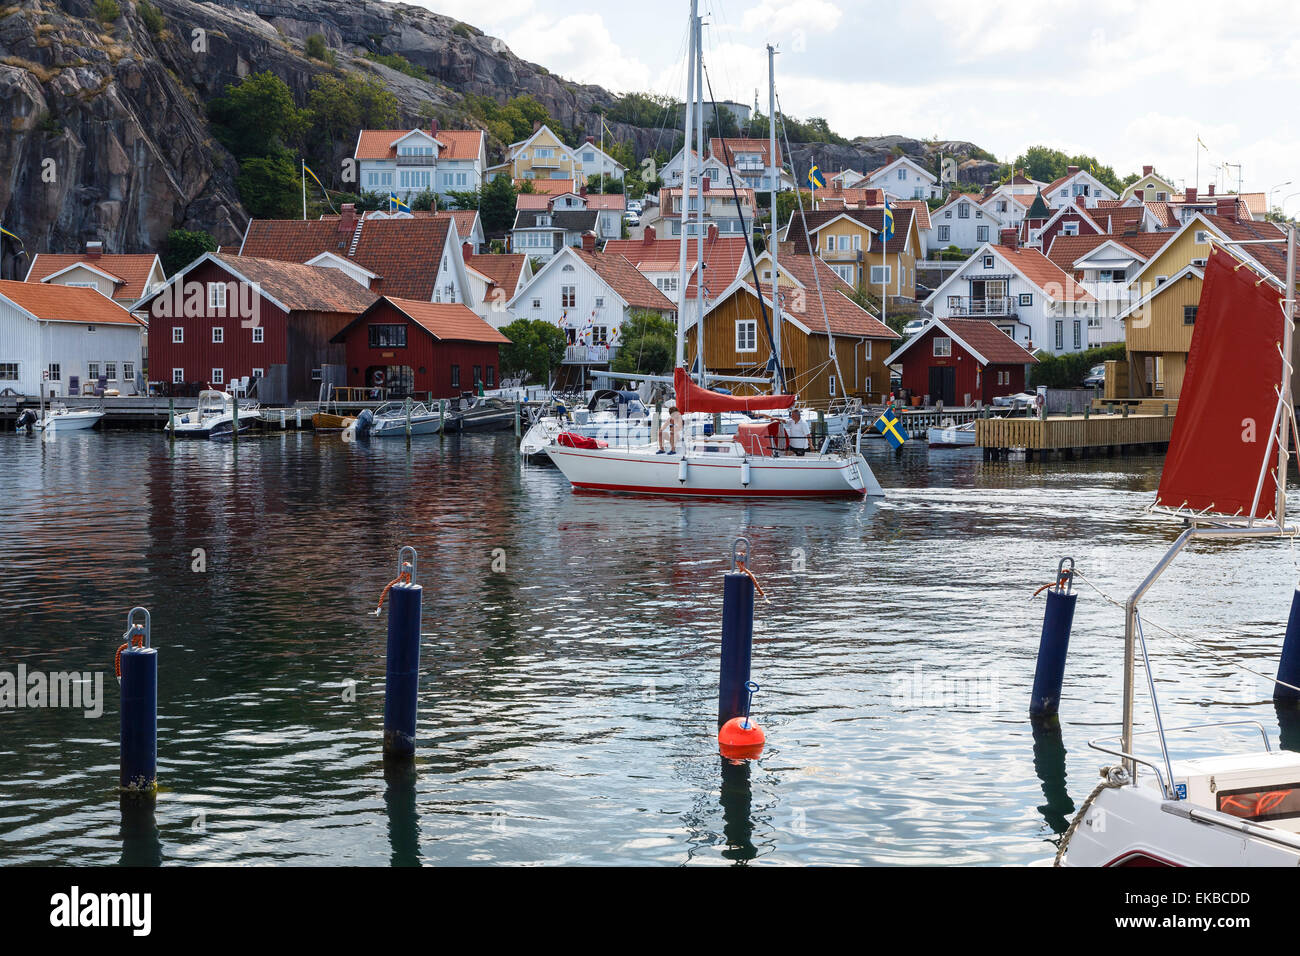 Fjallbacka, Bohuslan region, west coast, Sweden, Scandinavia, Europe - Stock Image